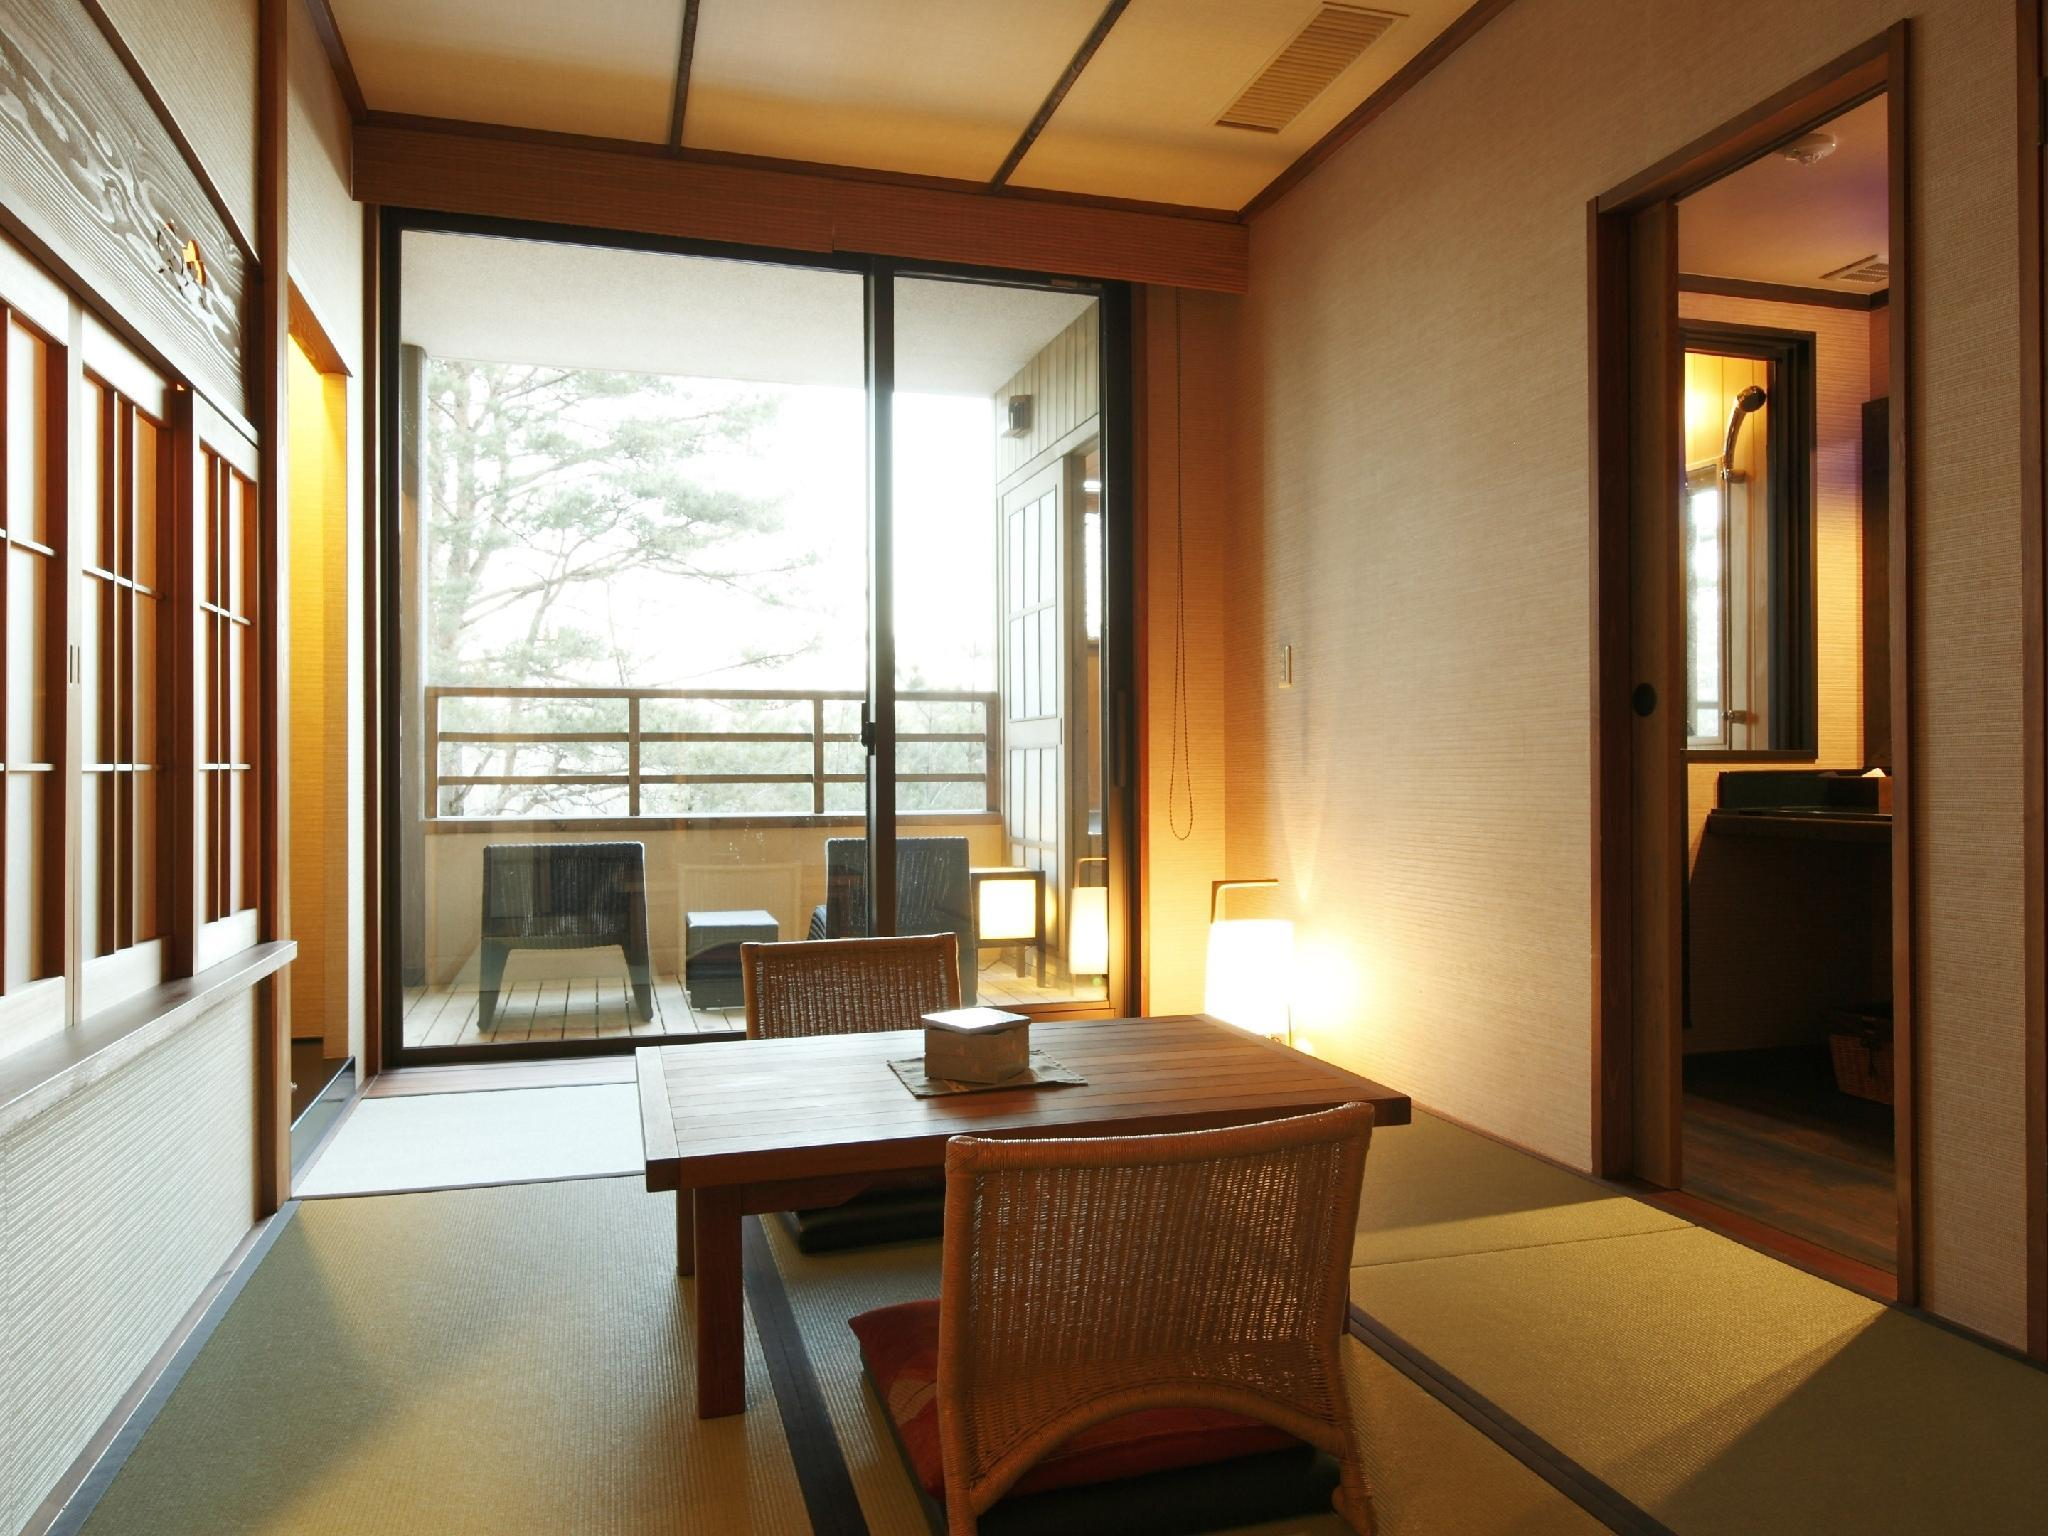 다다미 침대 객실A(노천 온천탕) (Japanese/Western-style Room with Open-air Hot Spring Bath (Type A))